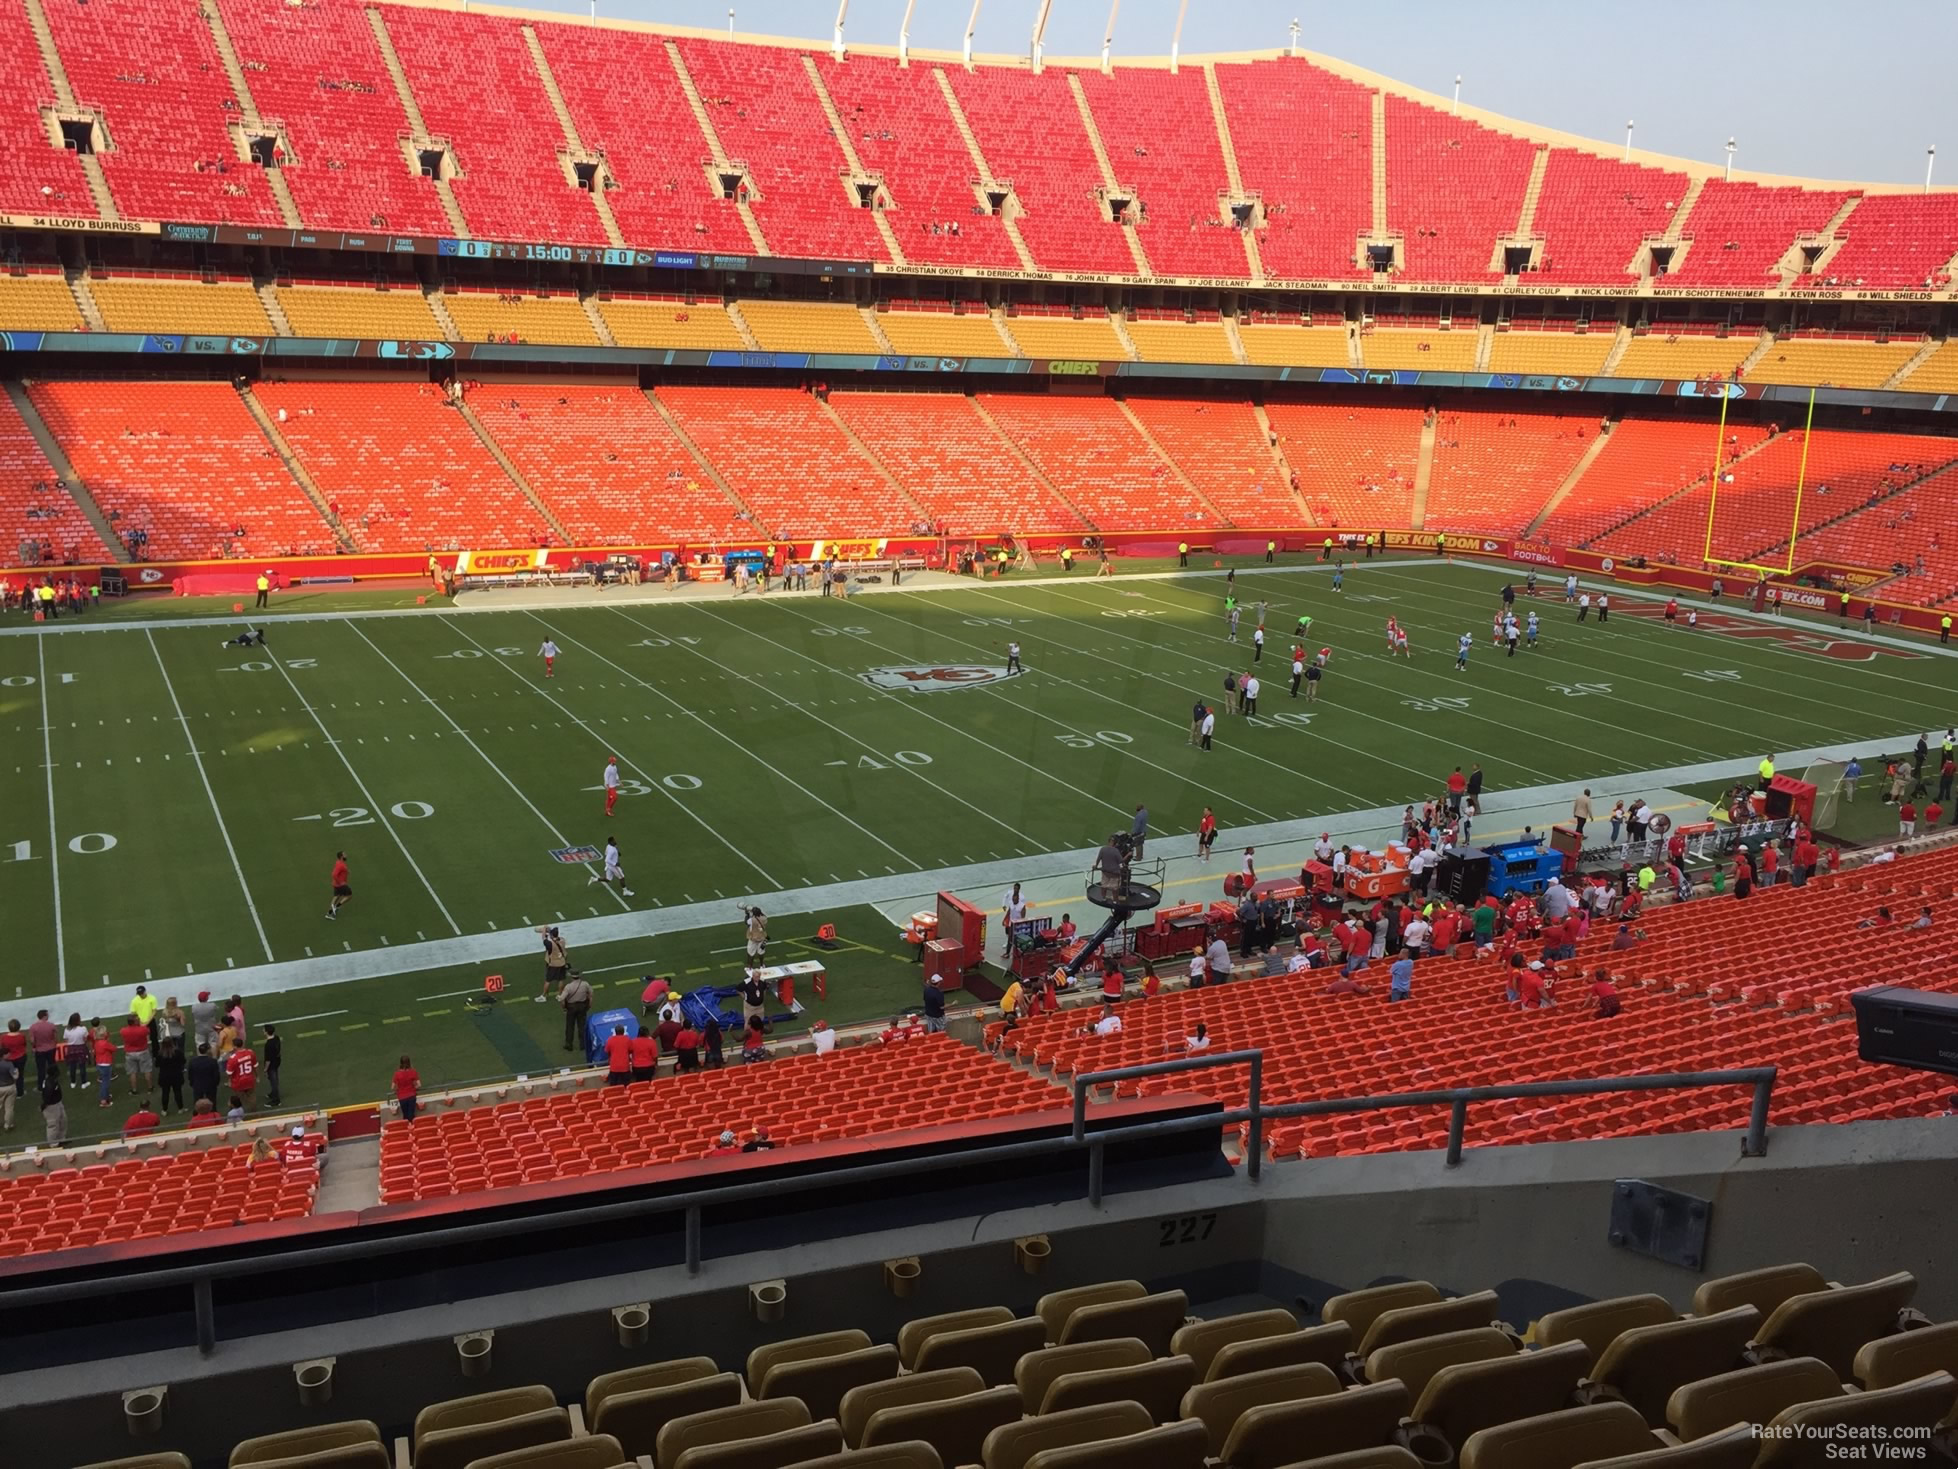 Arrowhead Stadium Section 227 - RateYourSeats.com